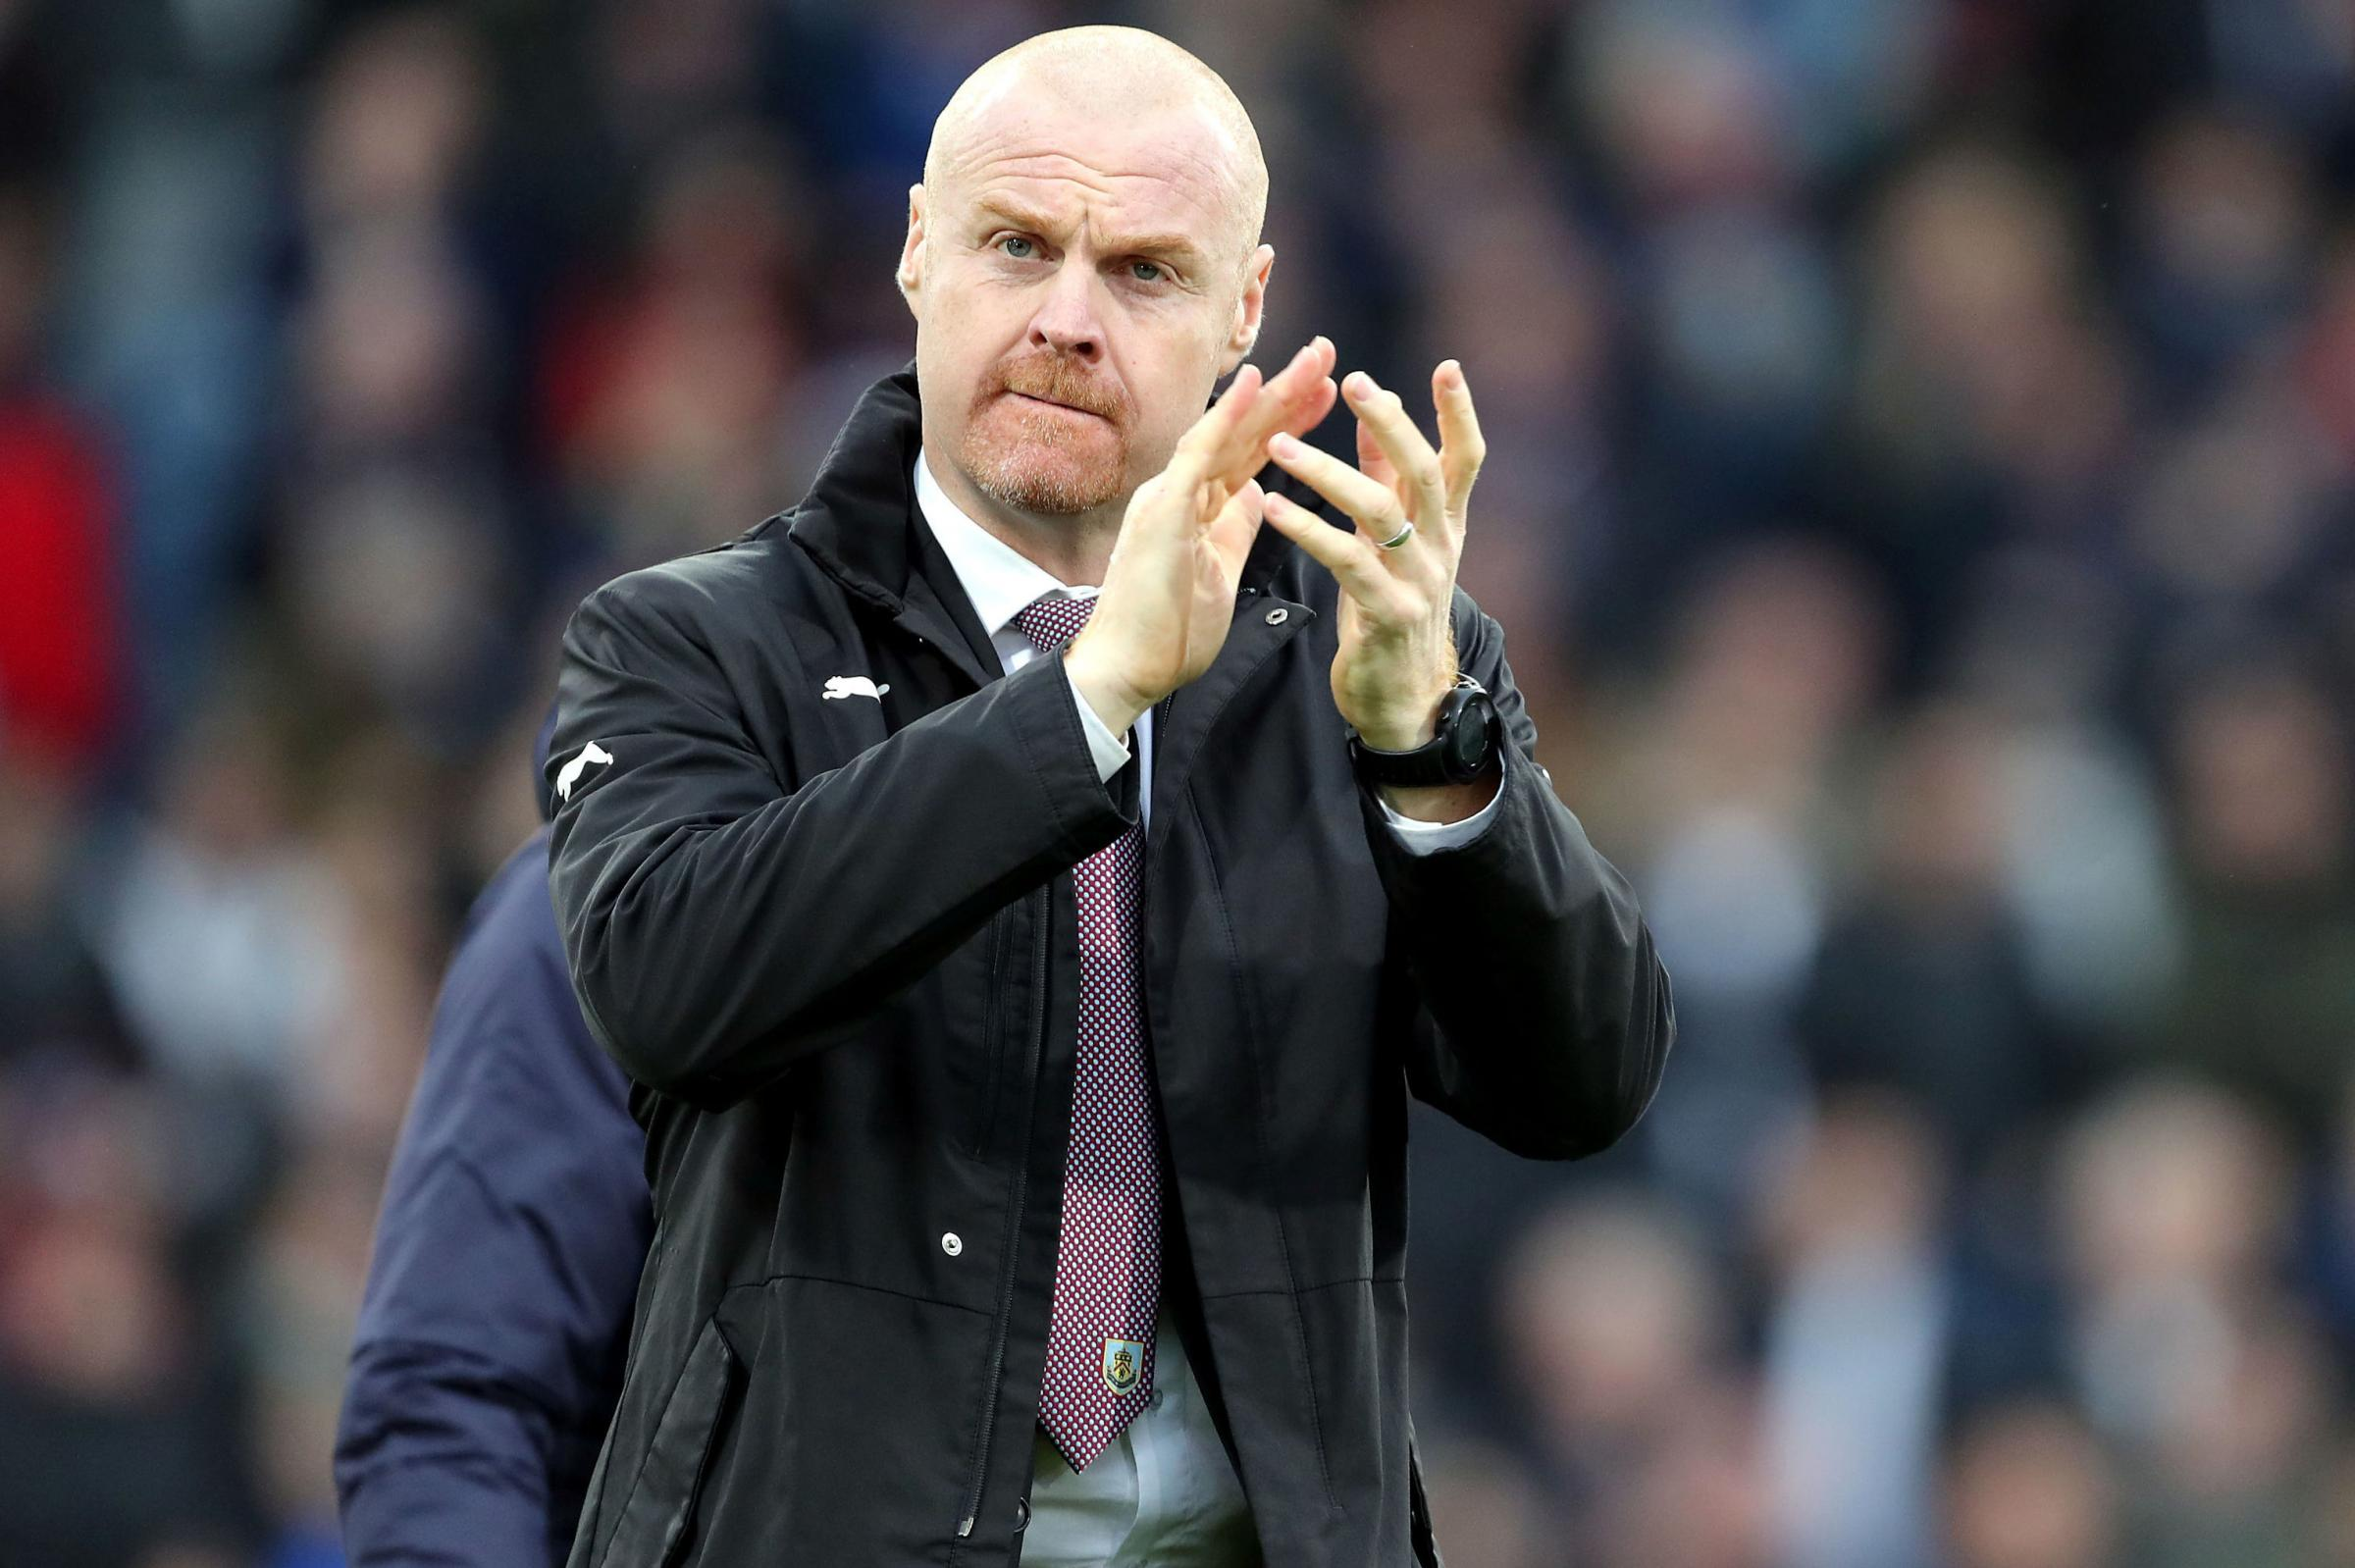 Clarets are showing true colours - Dyche